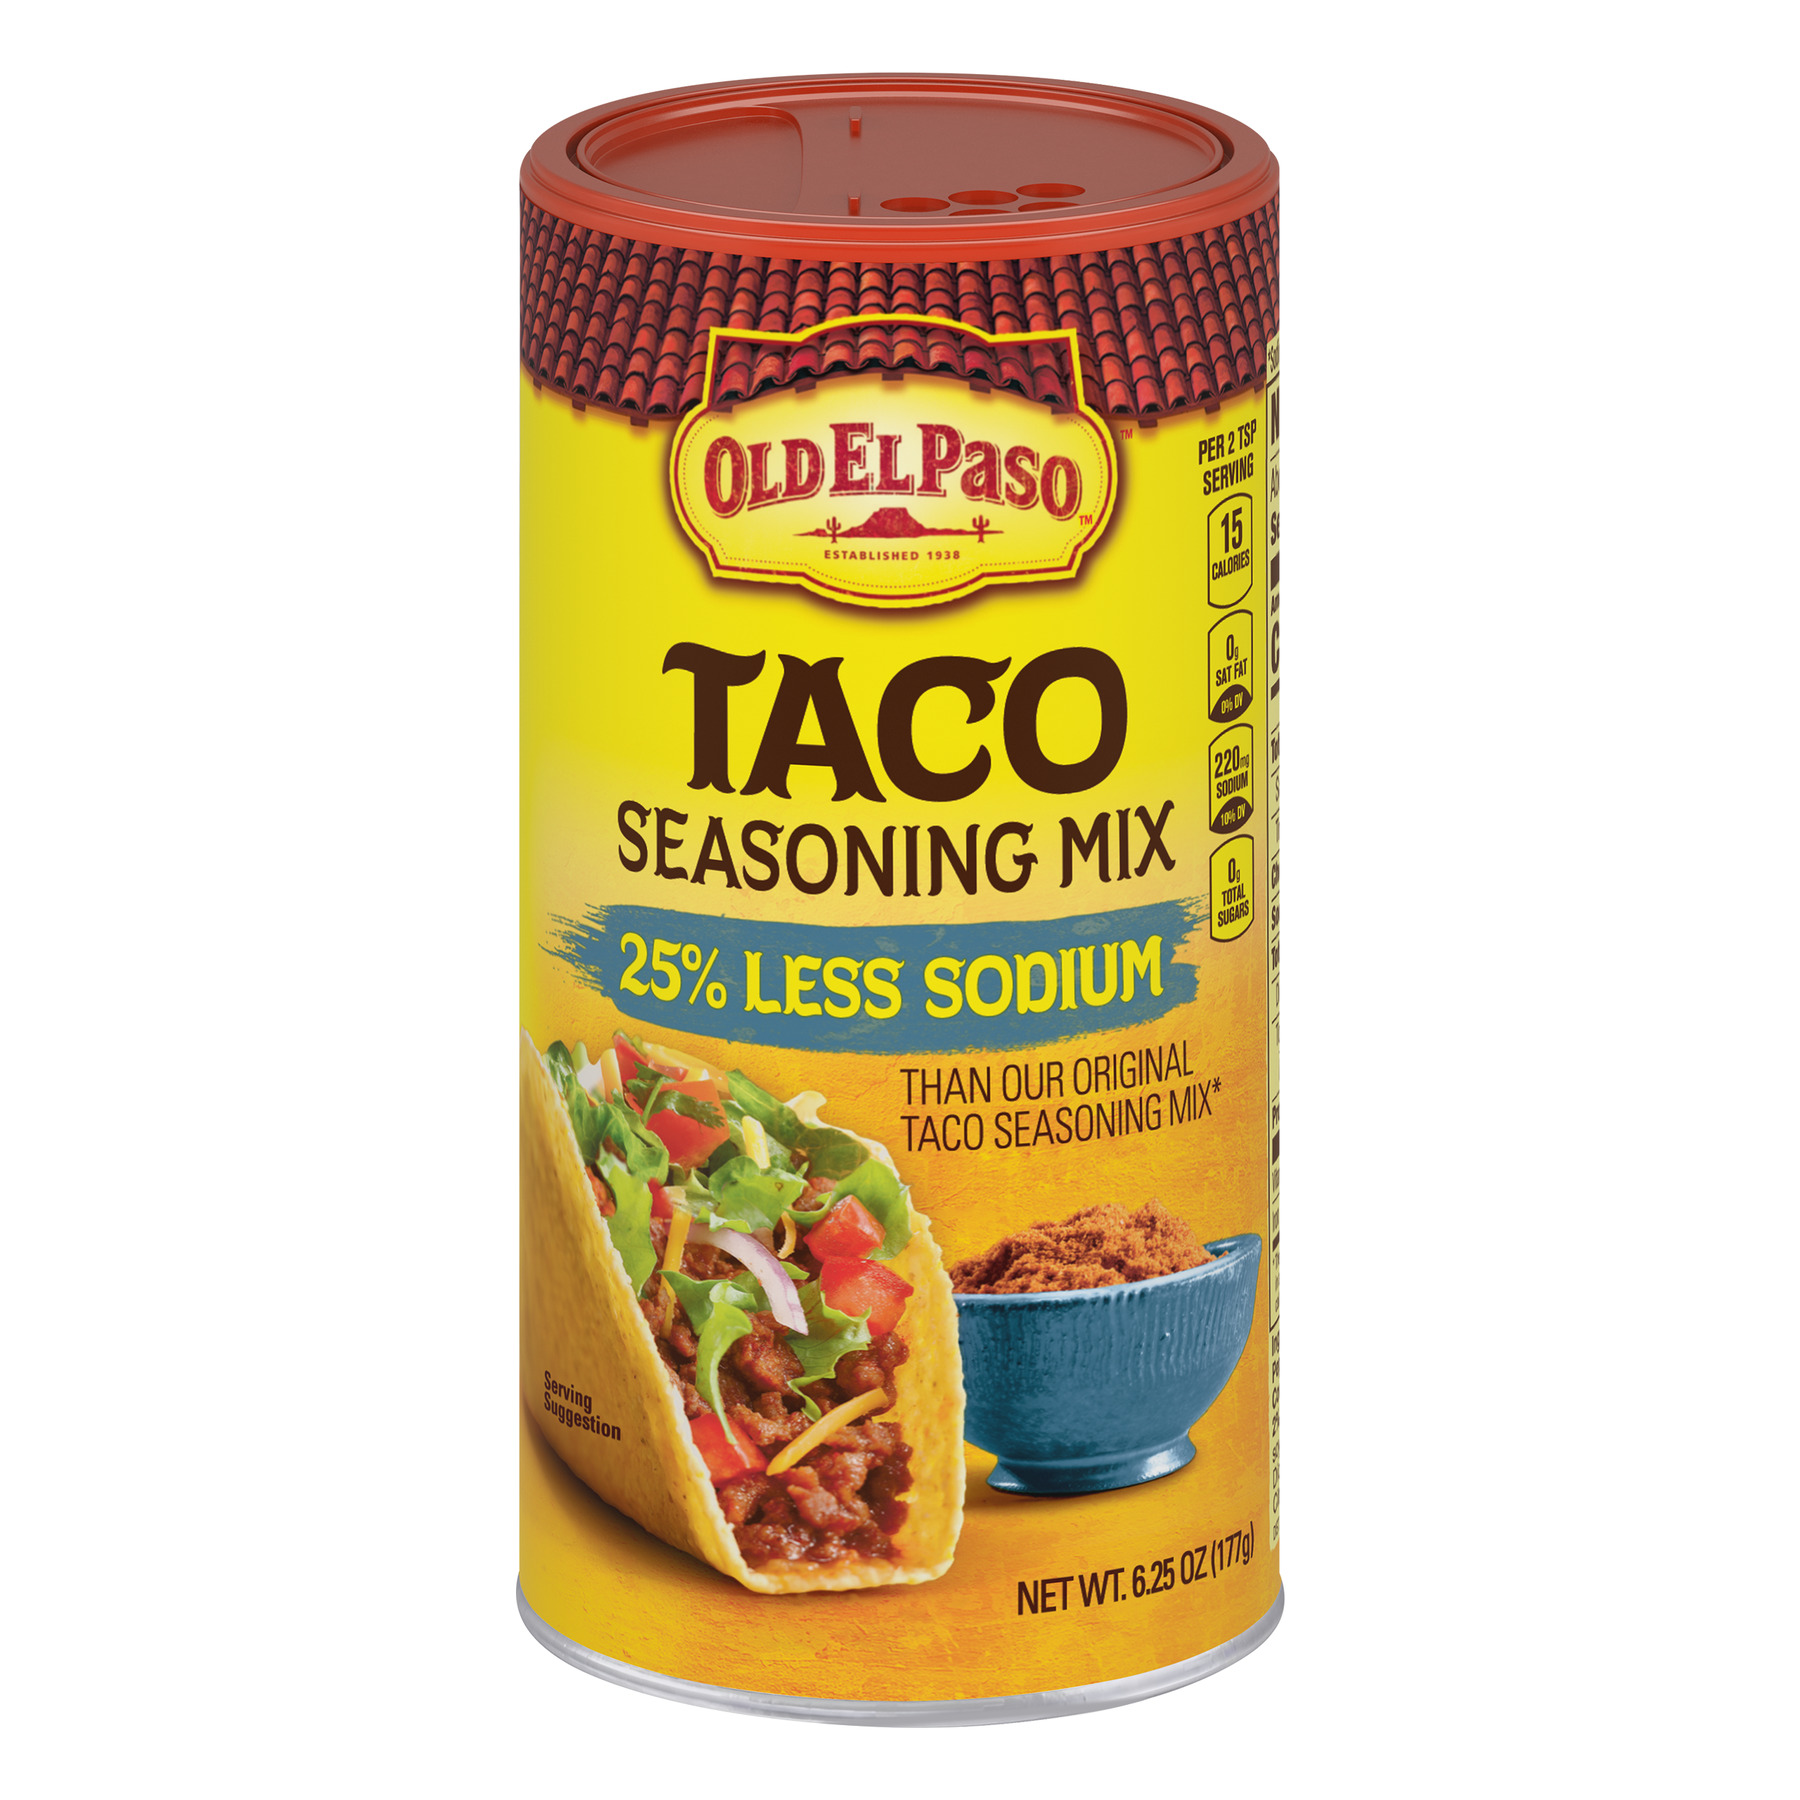 Old El Paso 25% Less Sodium Taco Seasoning Mix, 6.25 oz